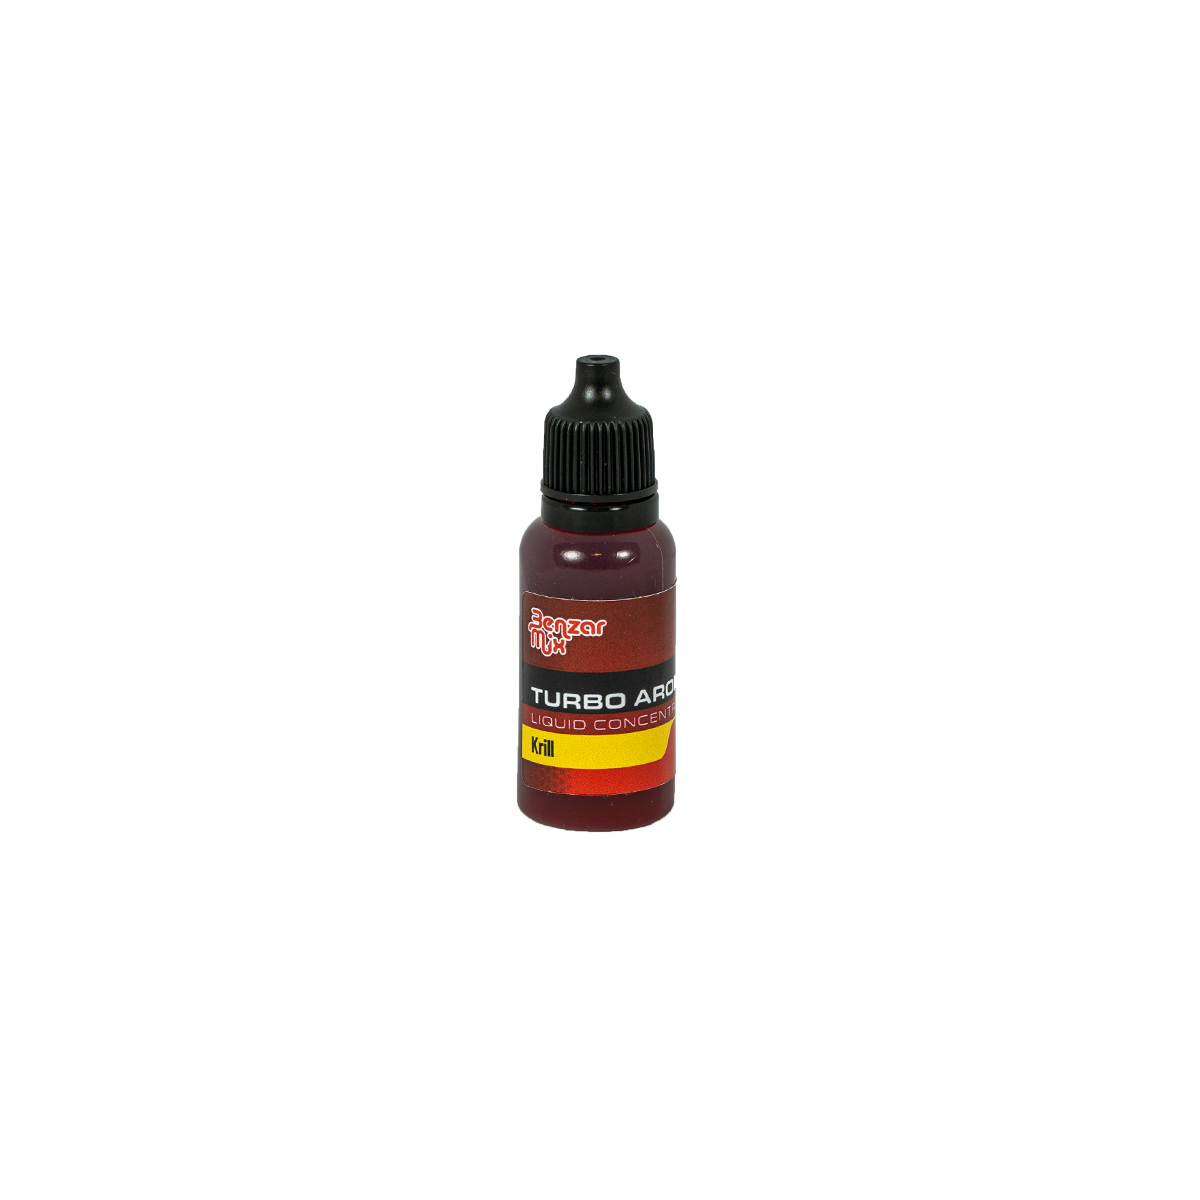 BENZAR MIX TURBO AROMA KRILL 15ML